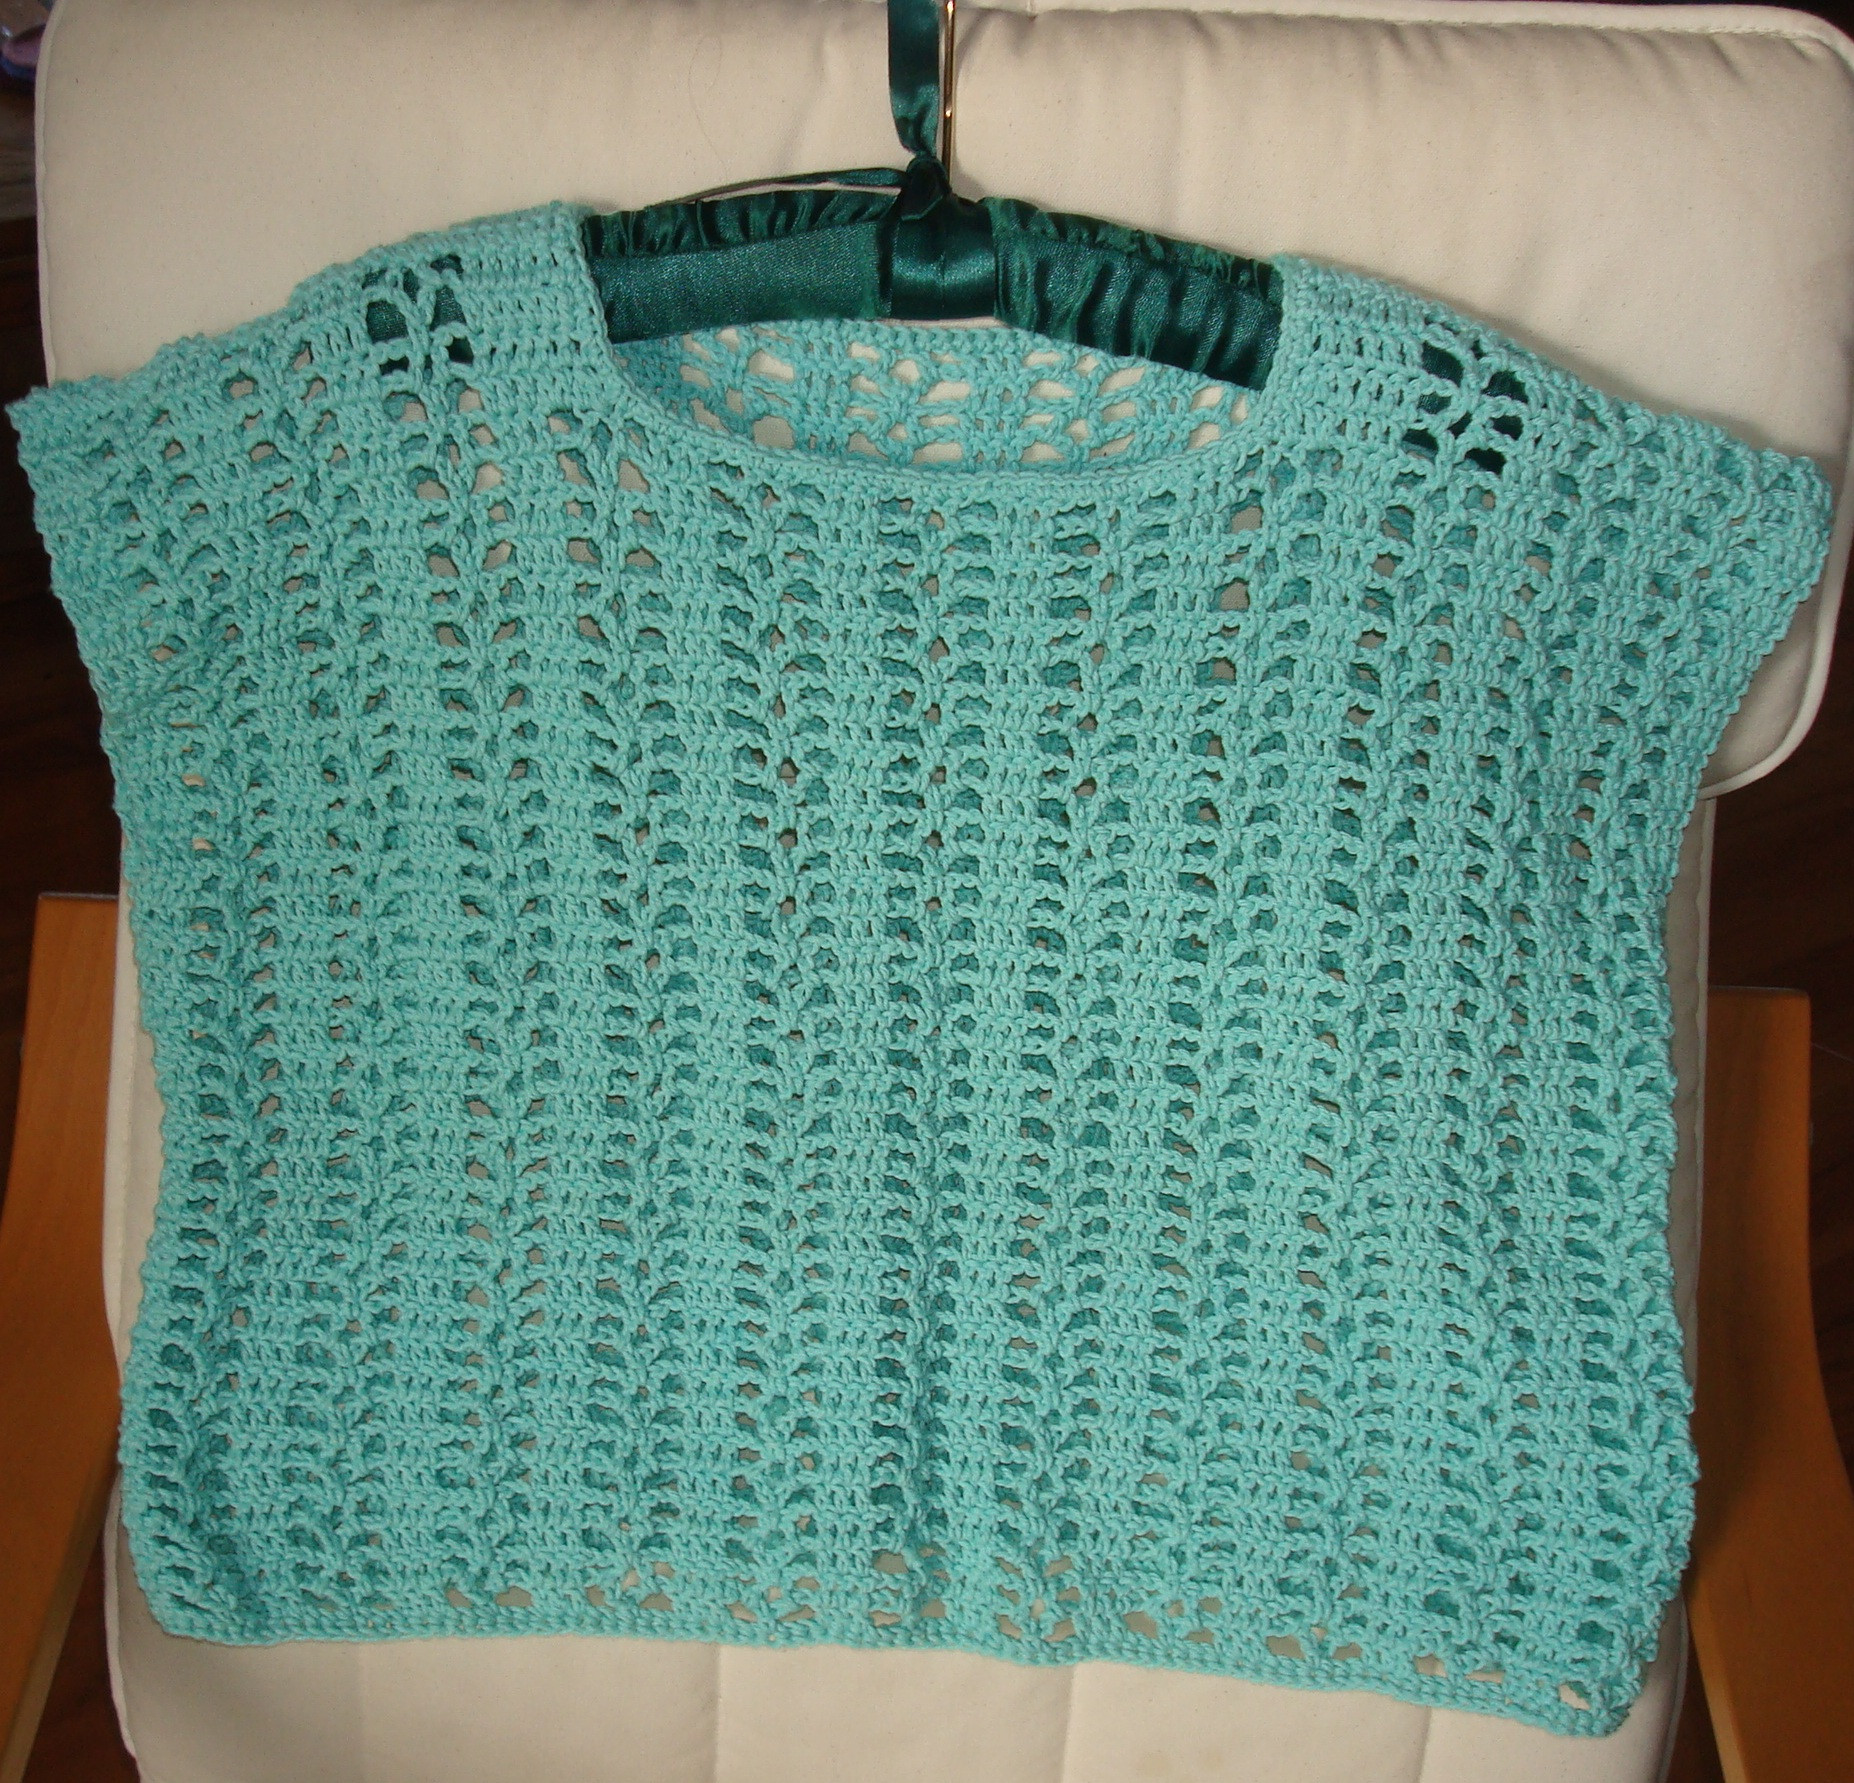 Luxury Yarn Over Pull Through the Heart and soul Of Crochet Crochet tops Patterns Of Innovative 49 Photos Crochet tops Patterns